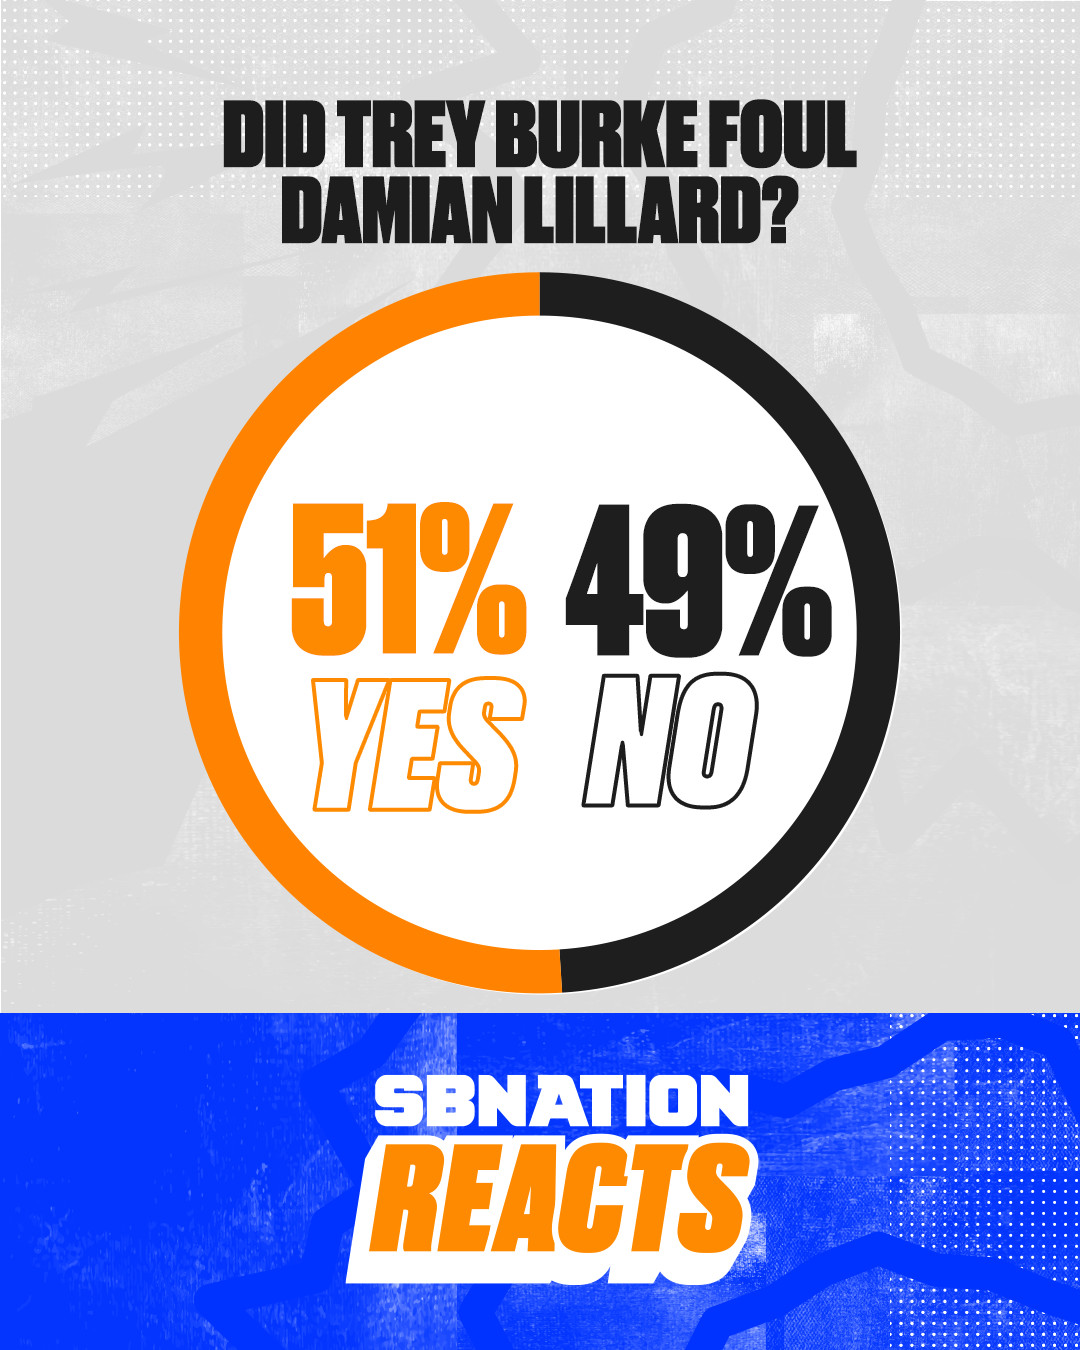 Trey Burke fouled Damian Lillard in the final seconds, according to a slim majority of fans.